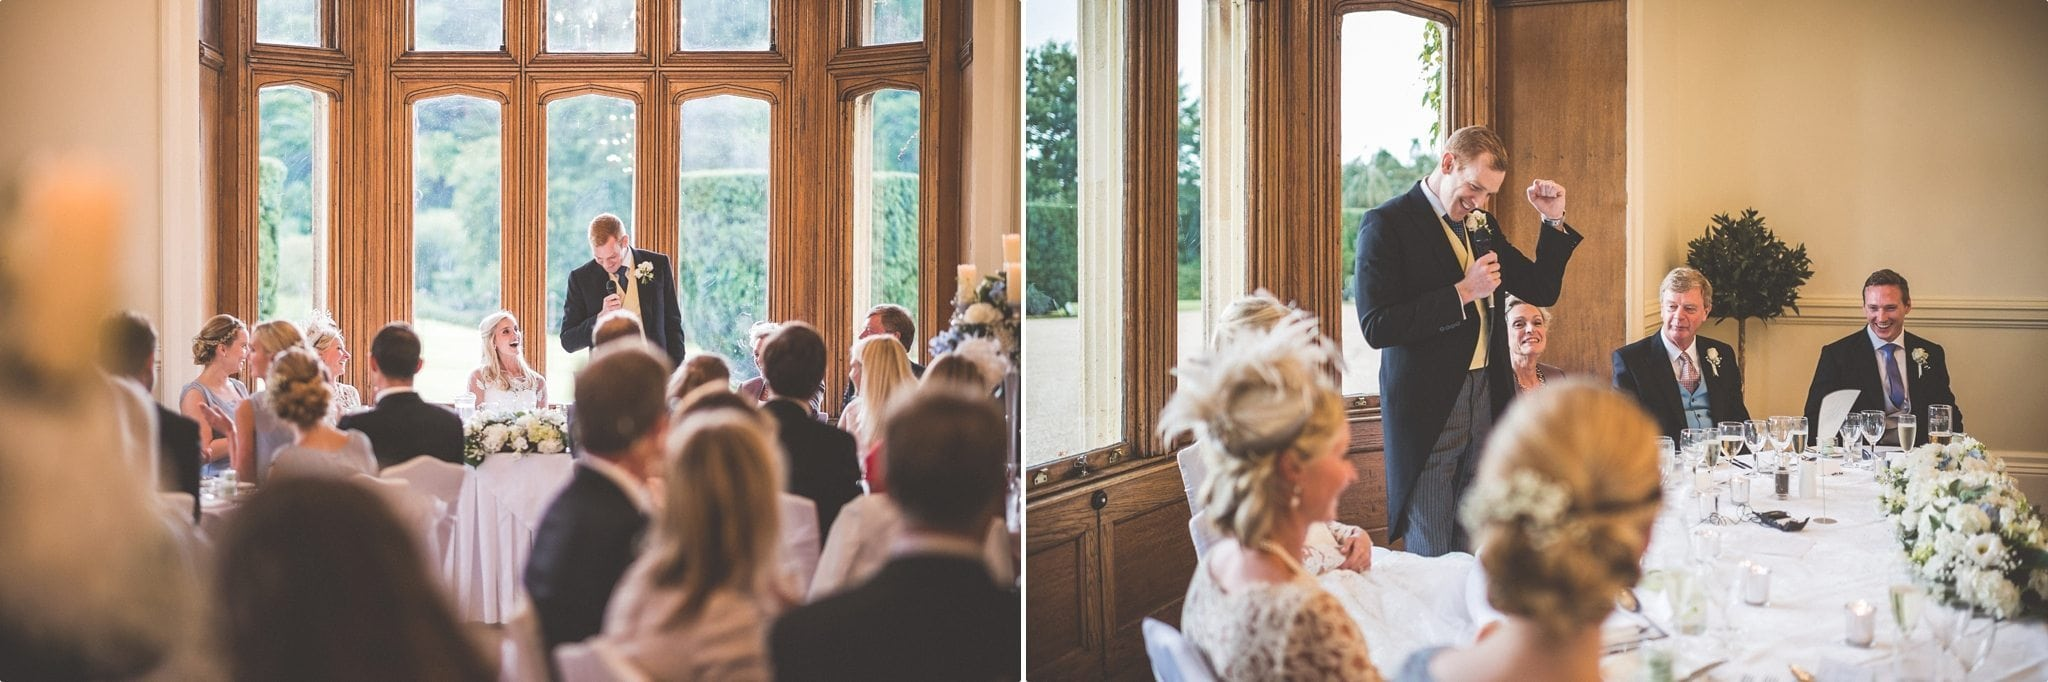 st-audries-park-wedding-maria-assia-photography-544